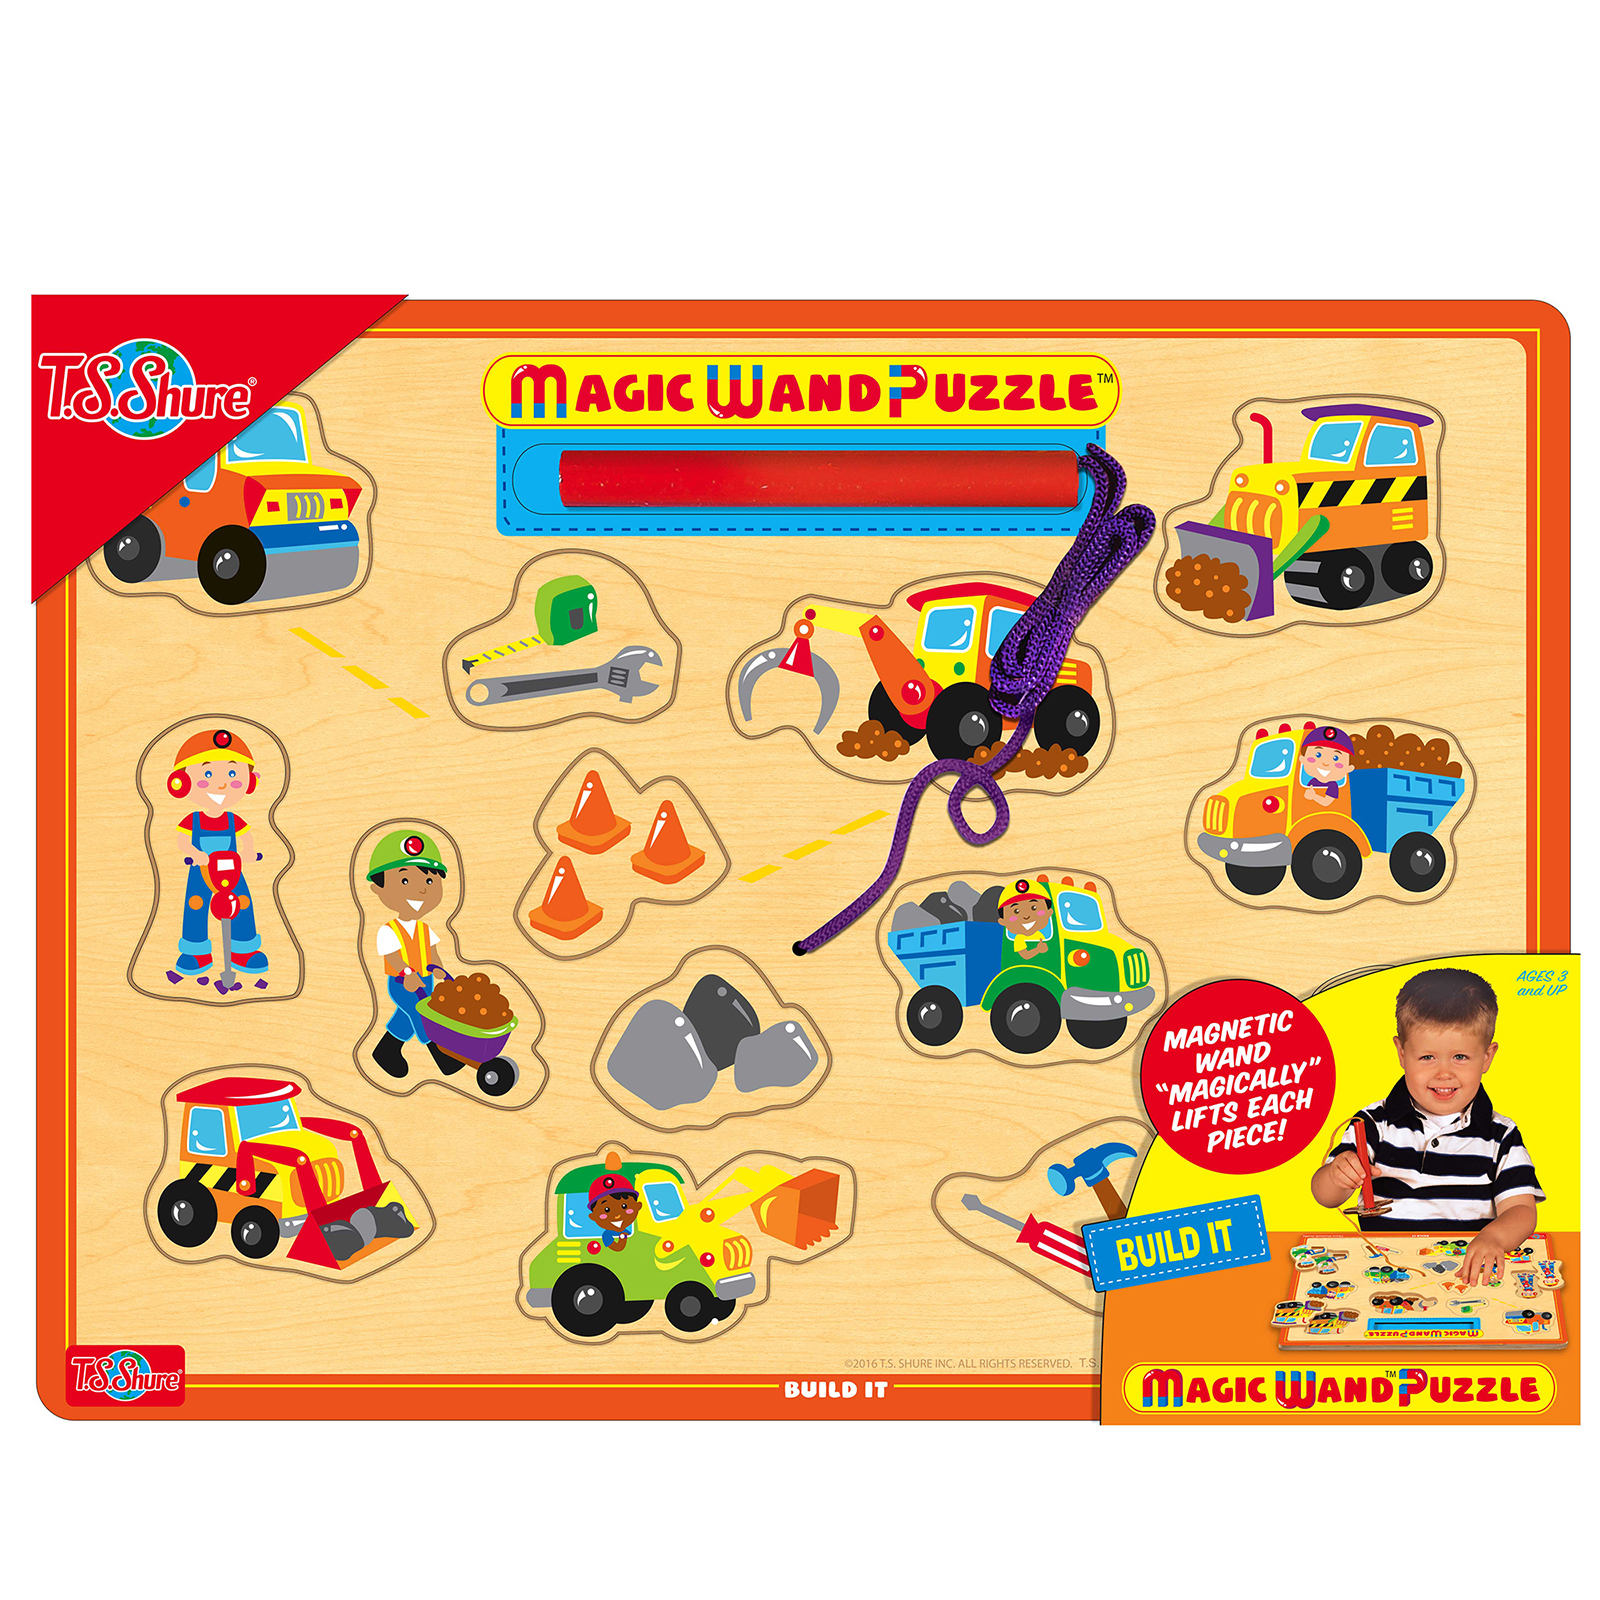 TS Shure Build It Wooden Magnetic Magic Wand Puzzle PartNumber: 05233152000P KsnValue: 9708568 MfgPartNumber: 195750